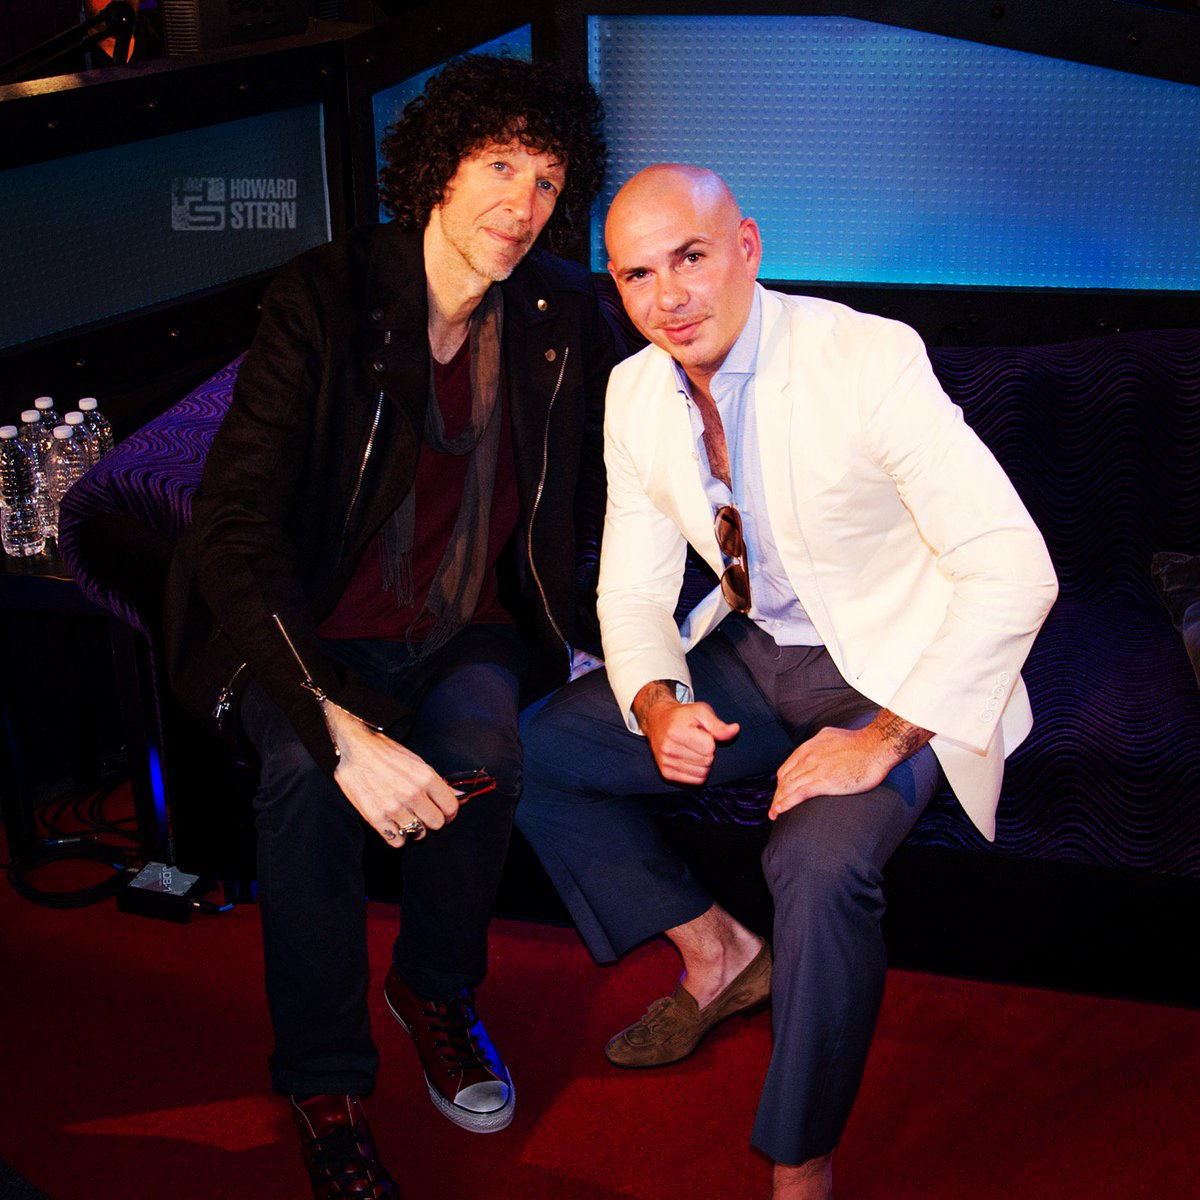 #TBT @HowardStern  @SIRIUSXM  #throwbackthursday #Dale https://t.co/L0F1AadSL4